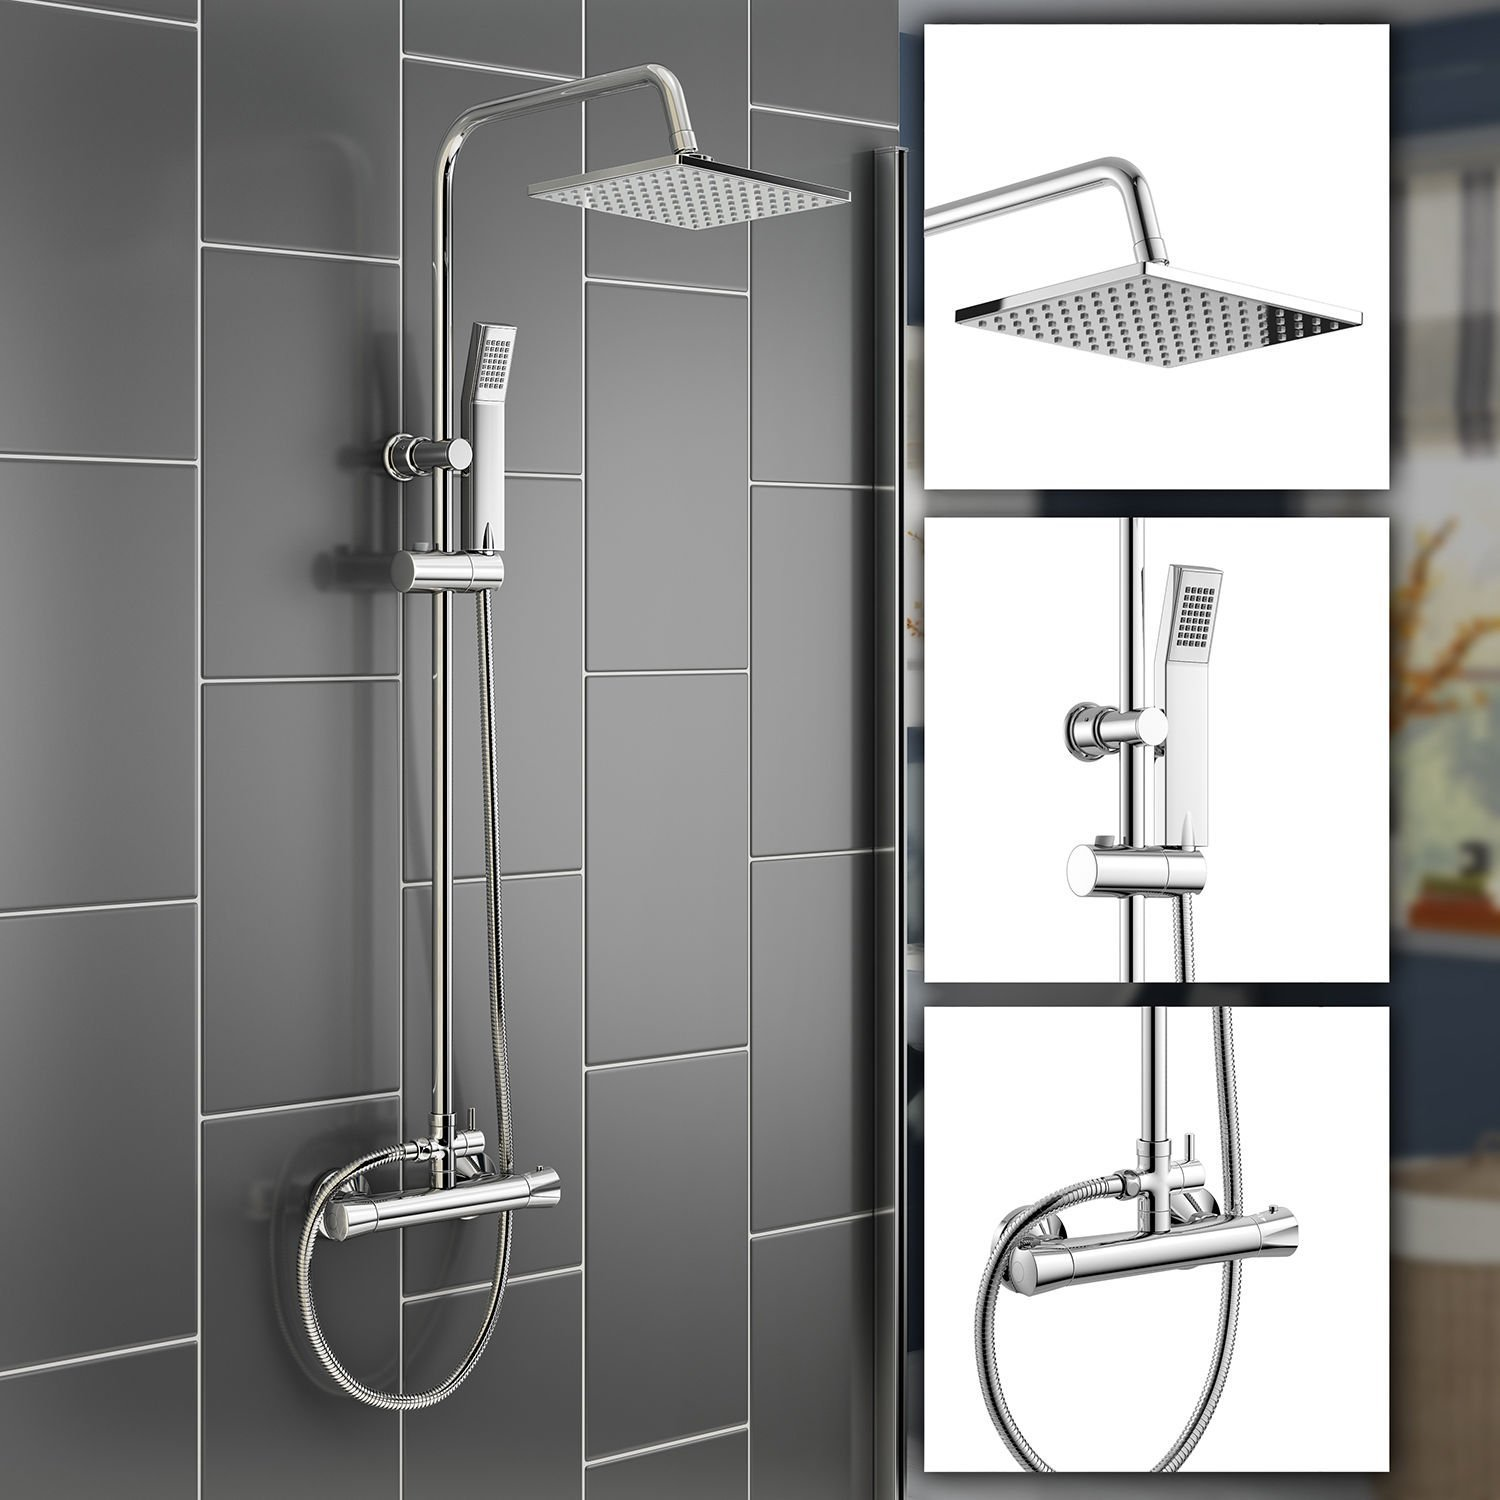 shower bn showerspas showerhead and iii bar wall kit pulse brushed combo handshower spray p in nickel kits kauai